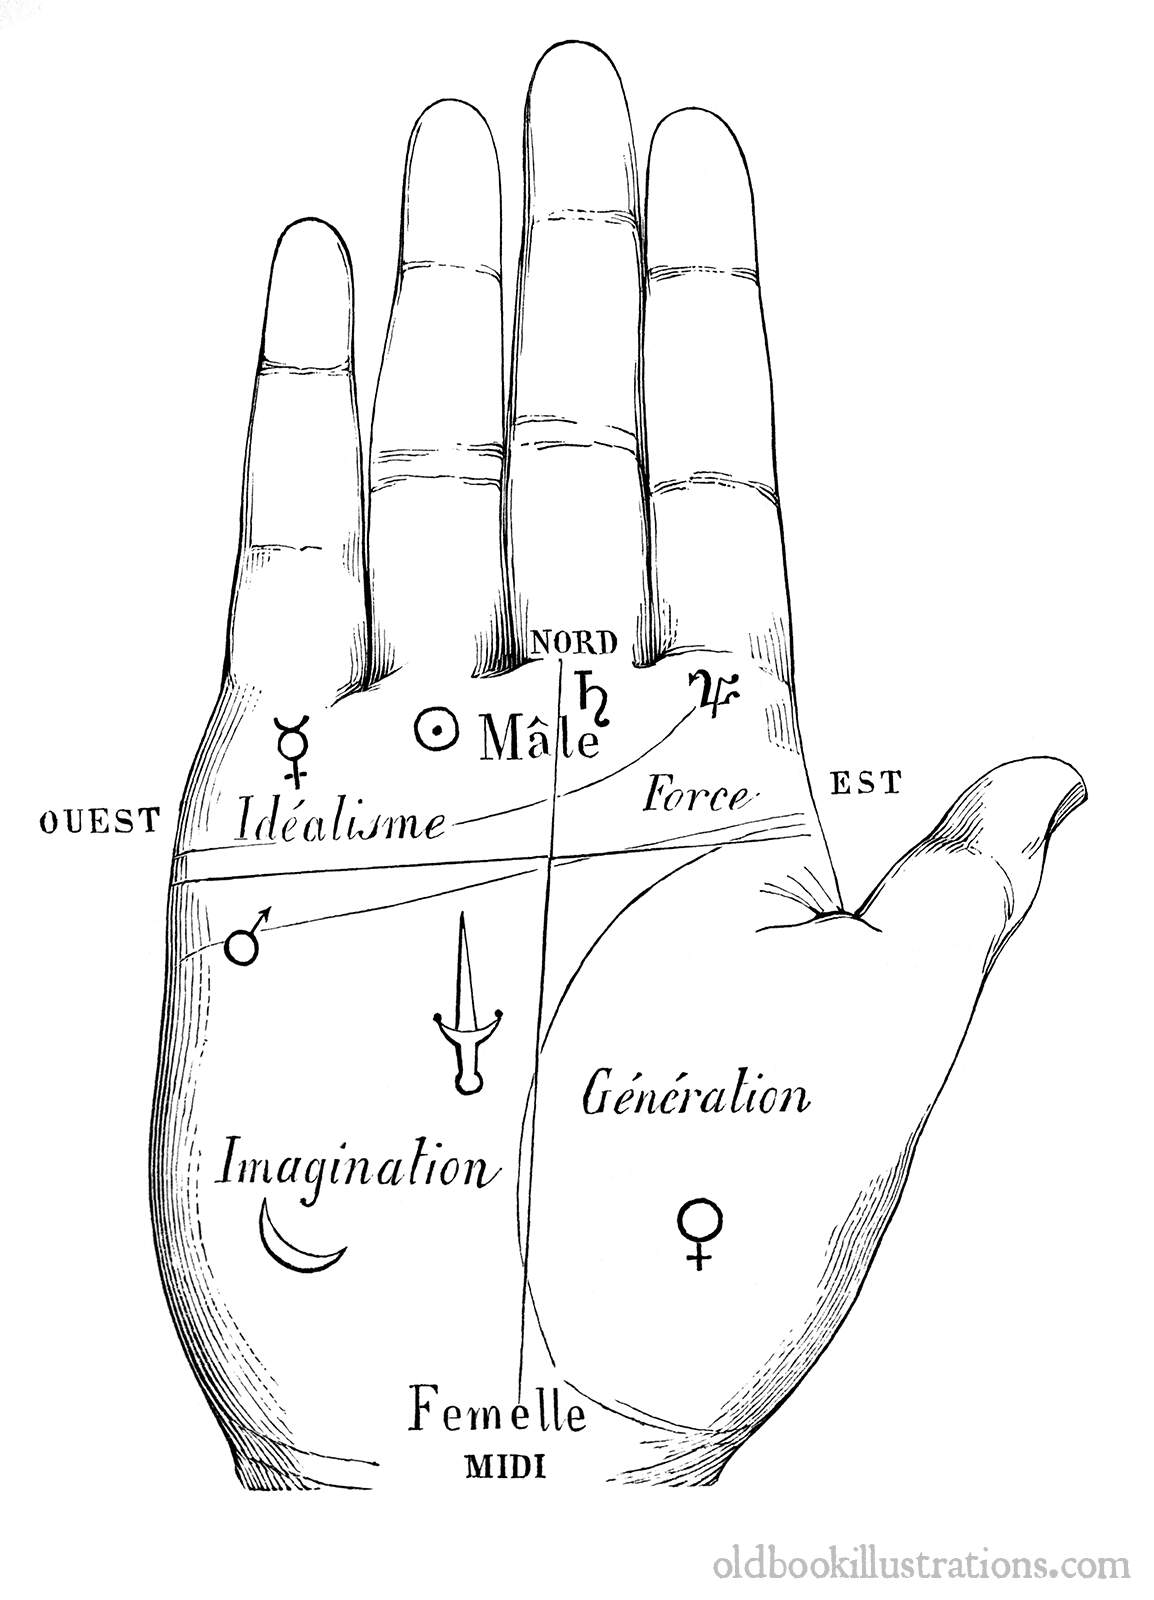 Palmistry Division Of The Hand Old Book Illustrations